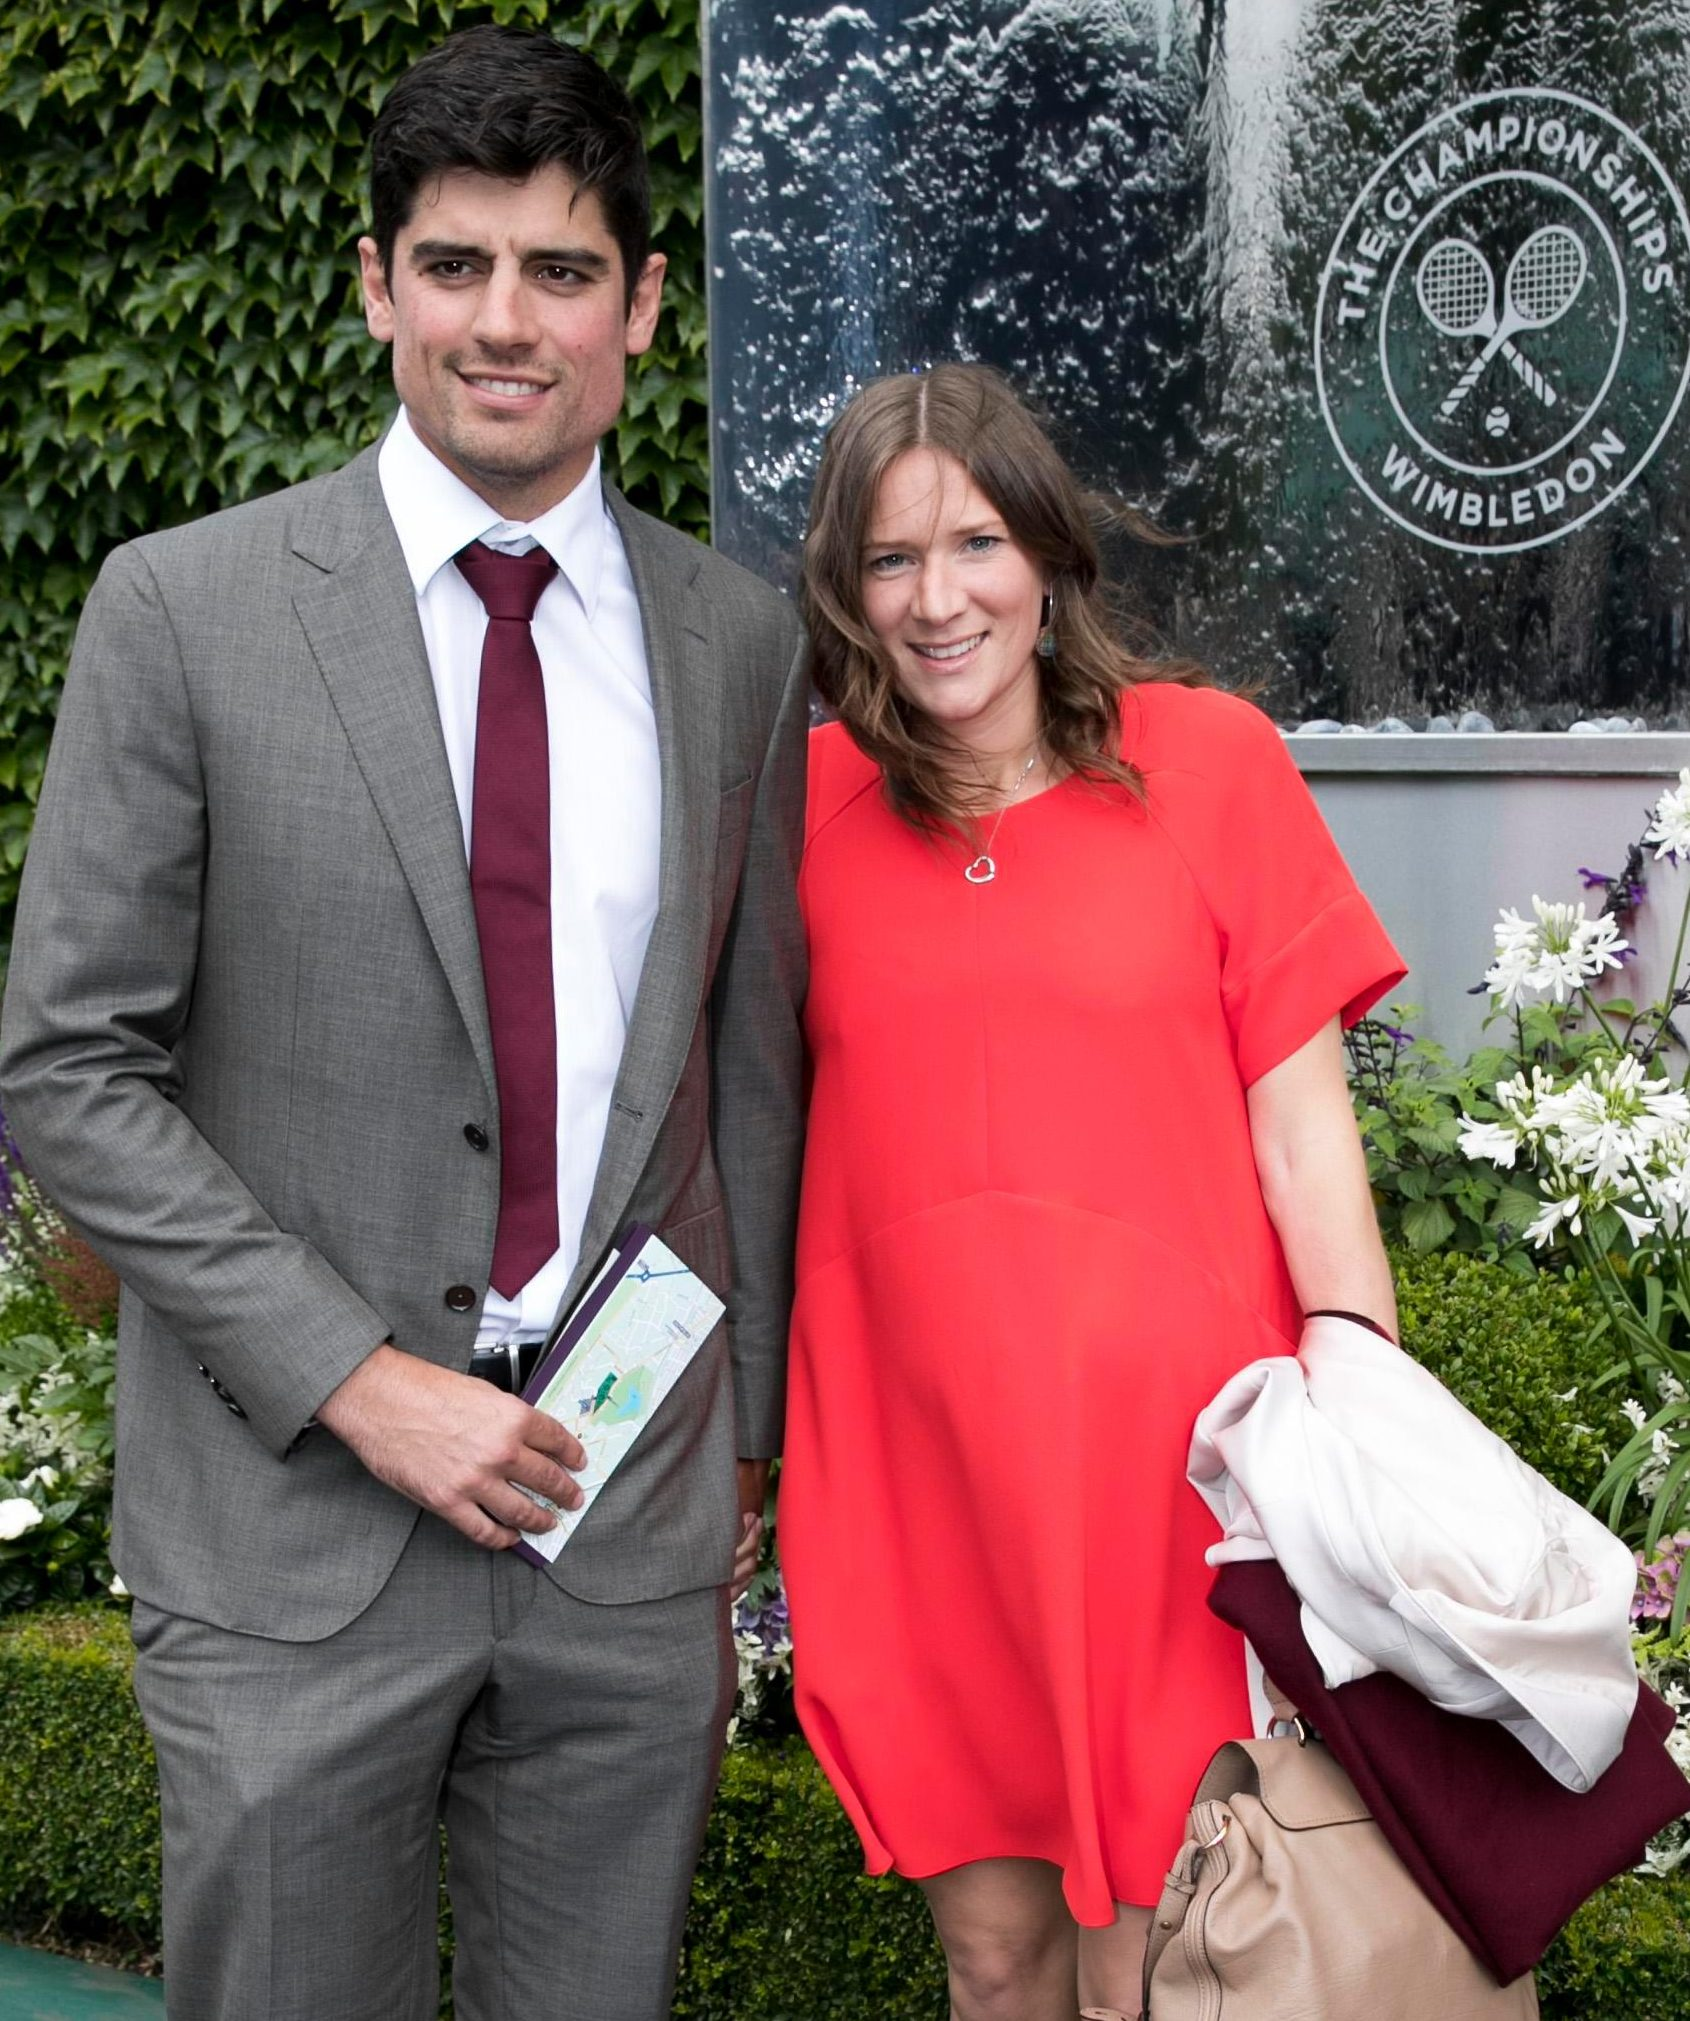 Alastair and Alice arrive for a day's tennis at Wimbledon in 2016